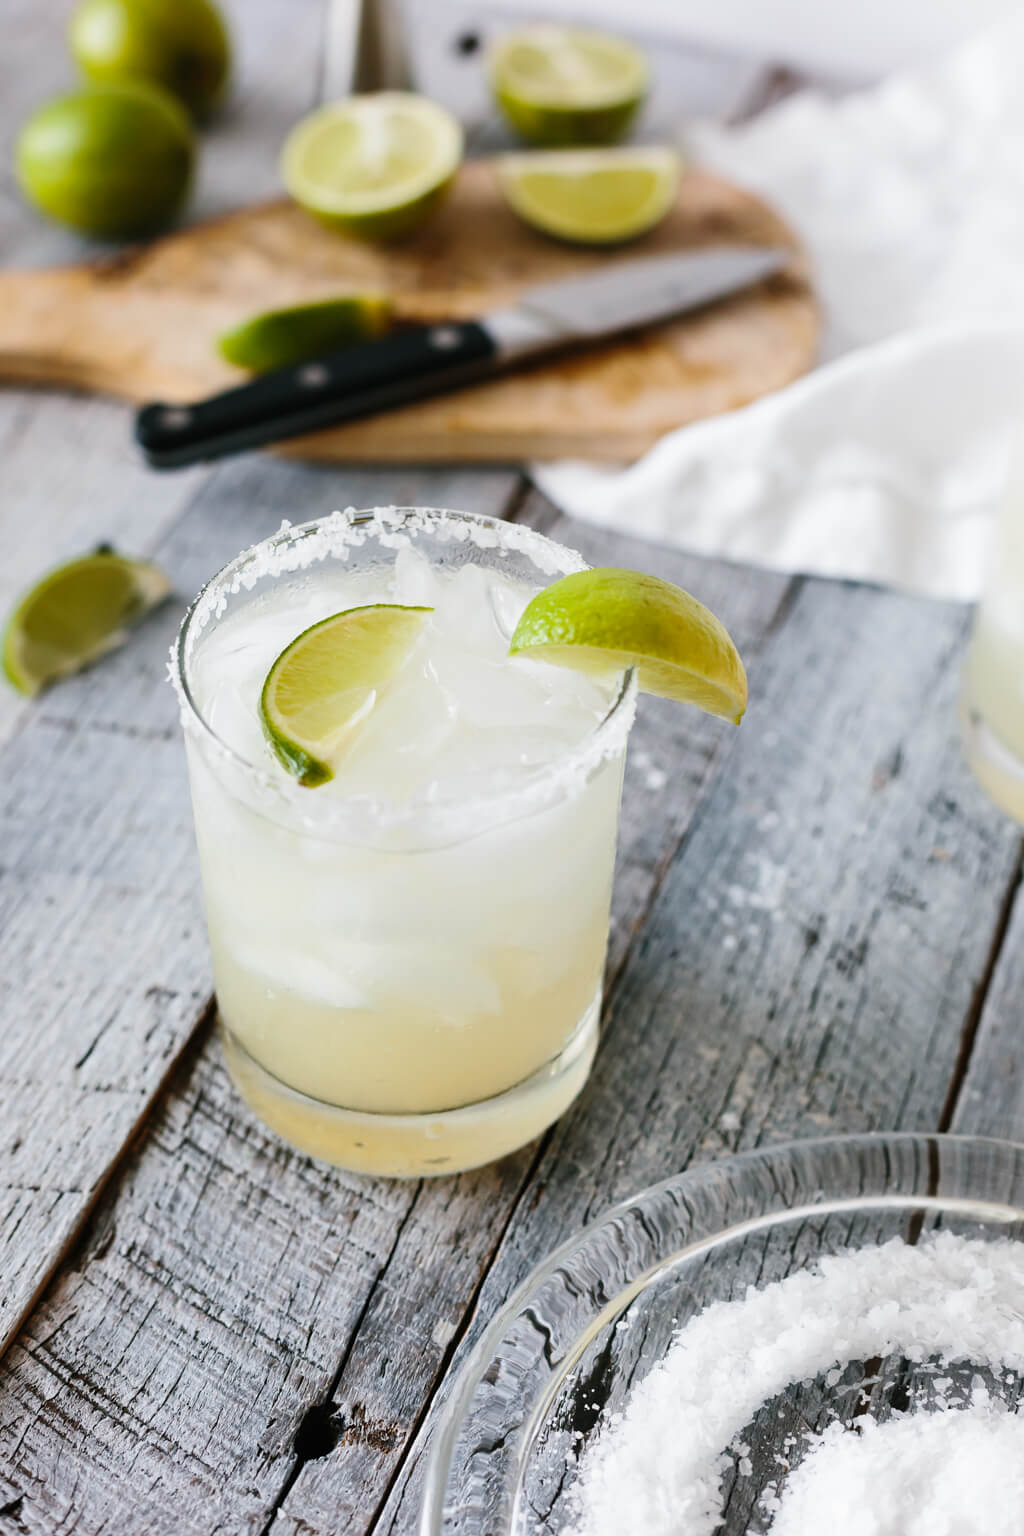 Margarita in a glass with lime wedges.